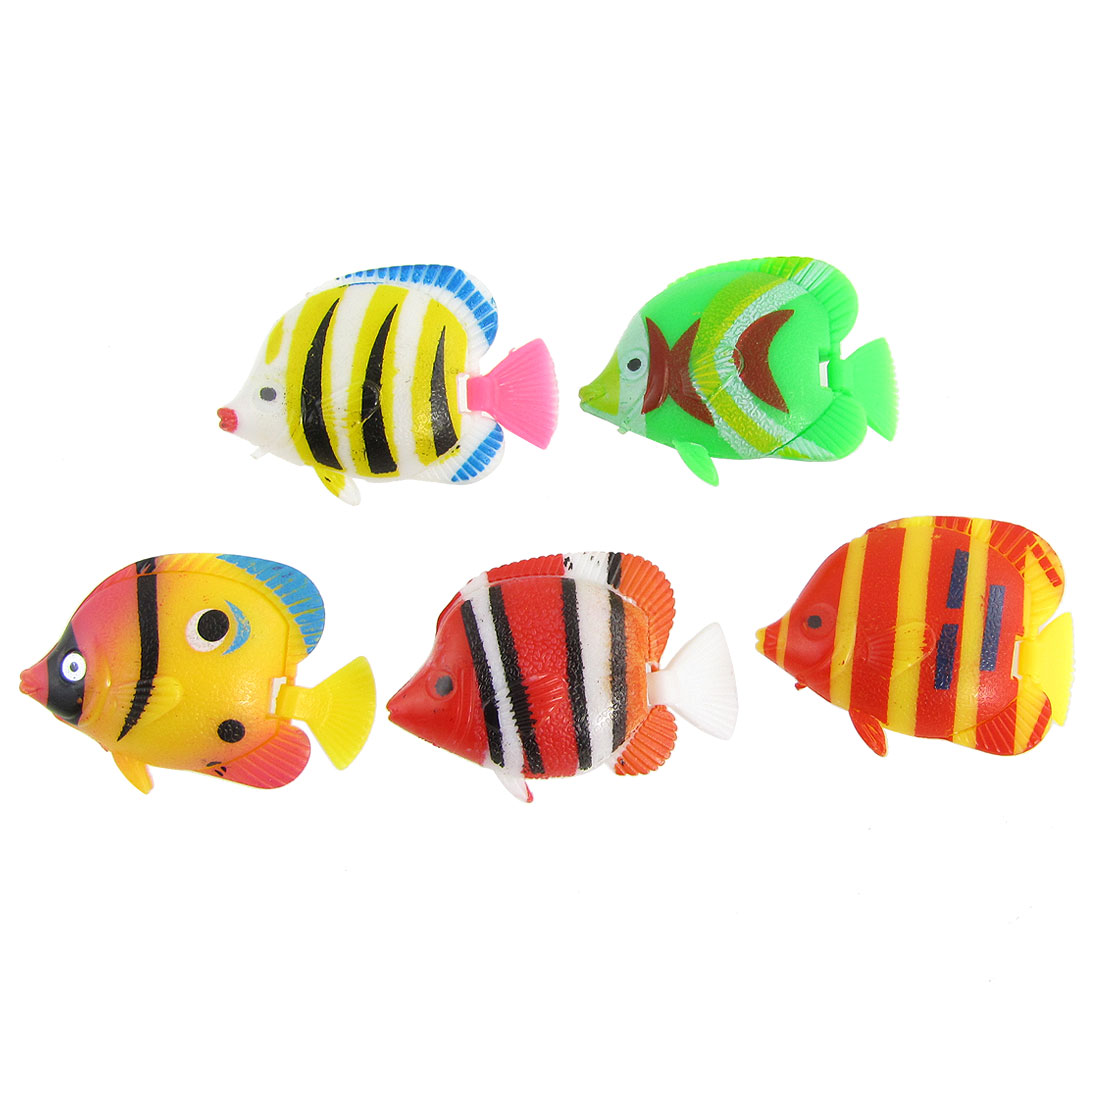 5 Pcs Simulated Multicolor Plastic Tropical Fishes Ornament for Fish Tank